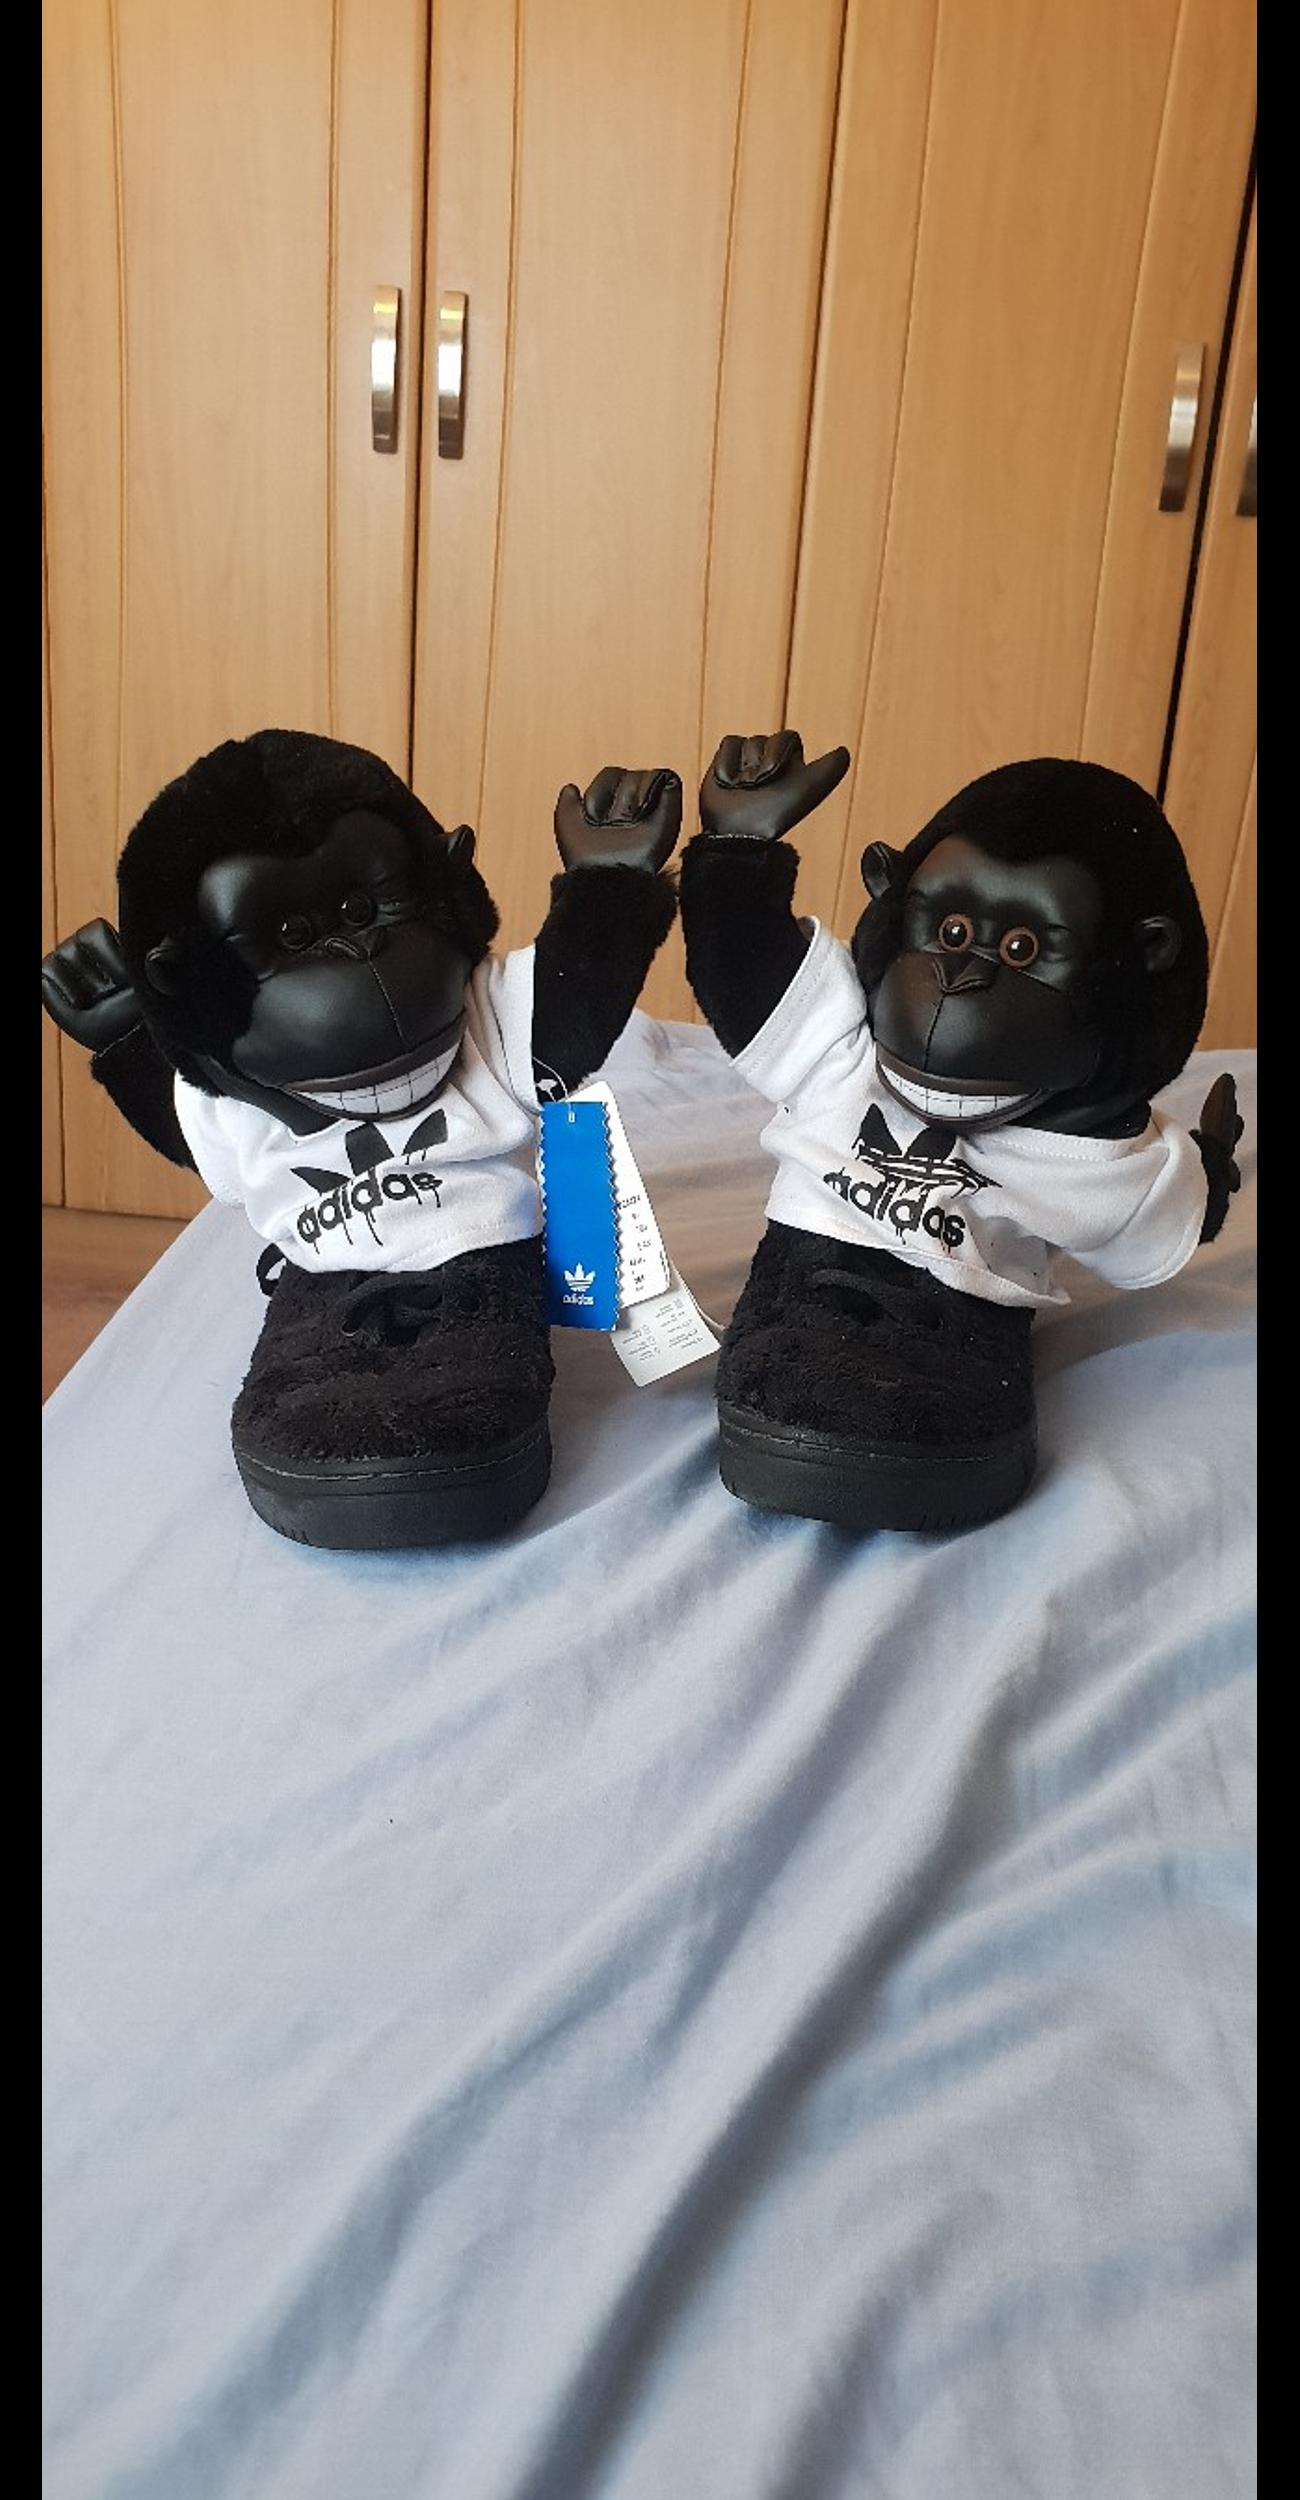 brand new rare trainers for sale. worth a lot of money if you check online and very hard to get hold of in particular sizes. the t shirt on the monkey a little dusty as kept in storage but otherwise brand new never worn